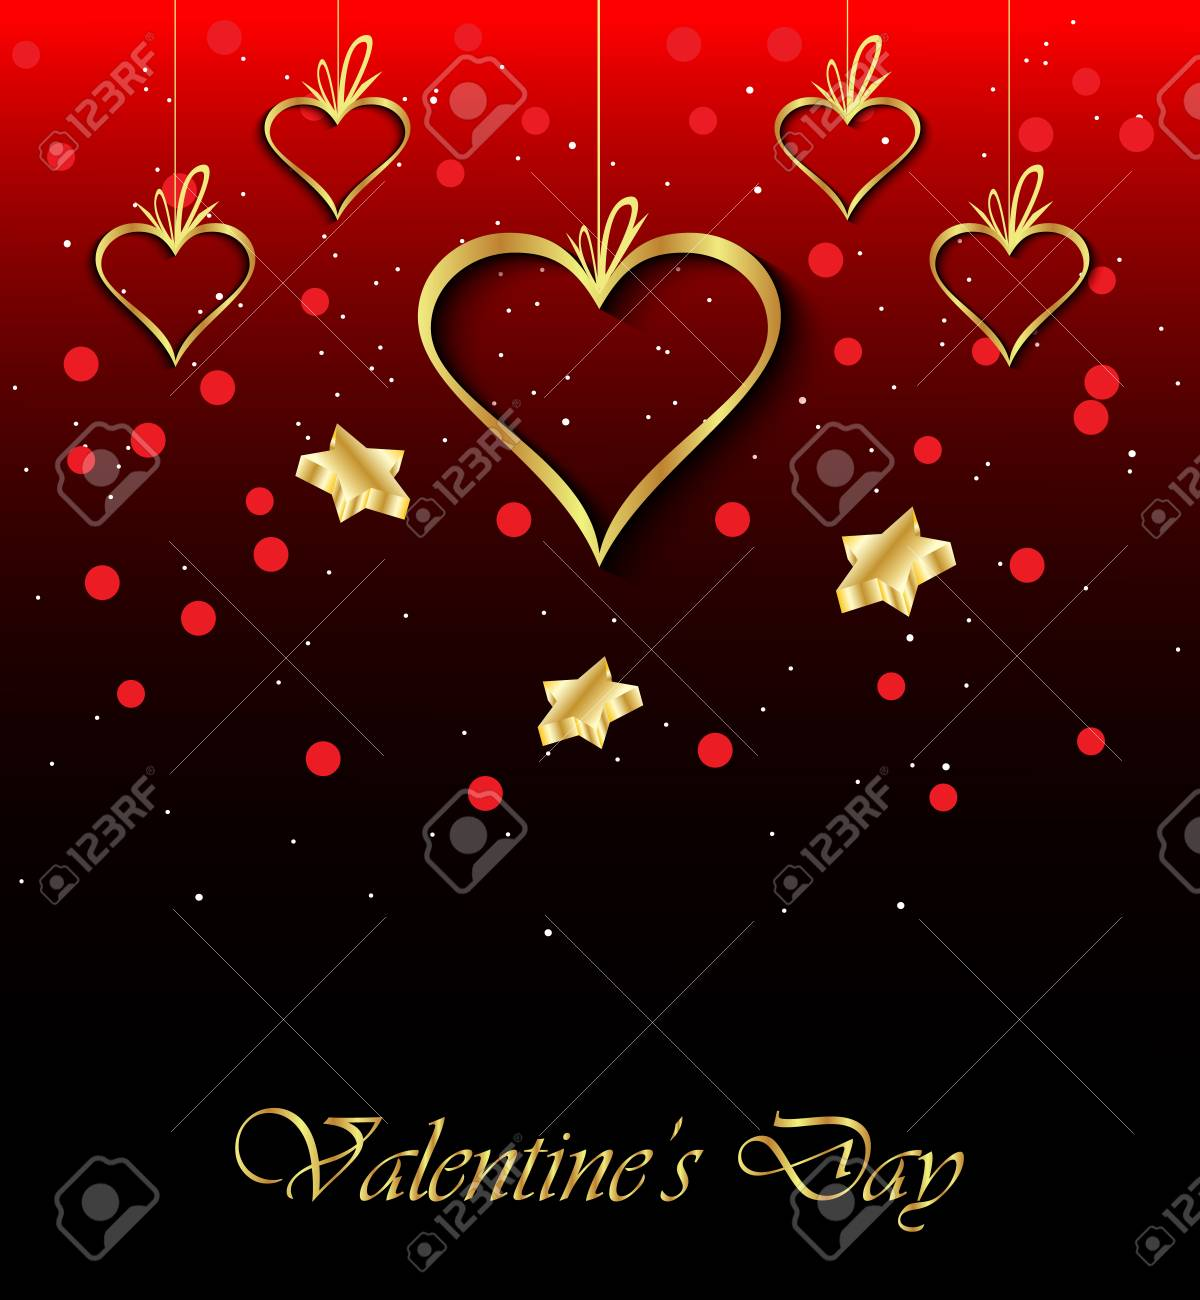 Happy Valentines Day Invitation On The Dinner Background For